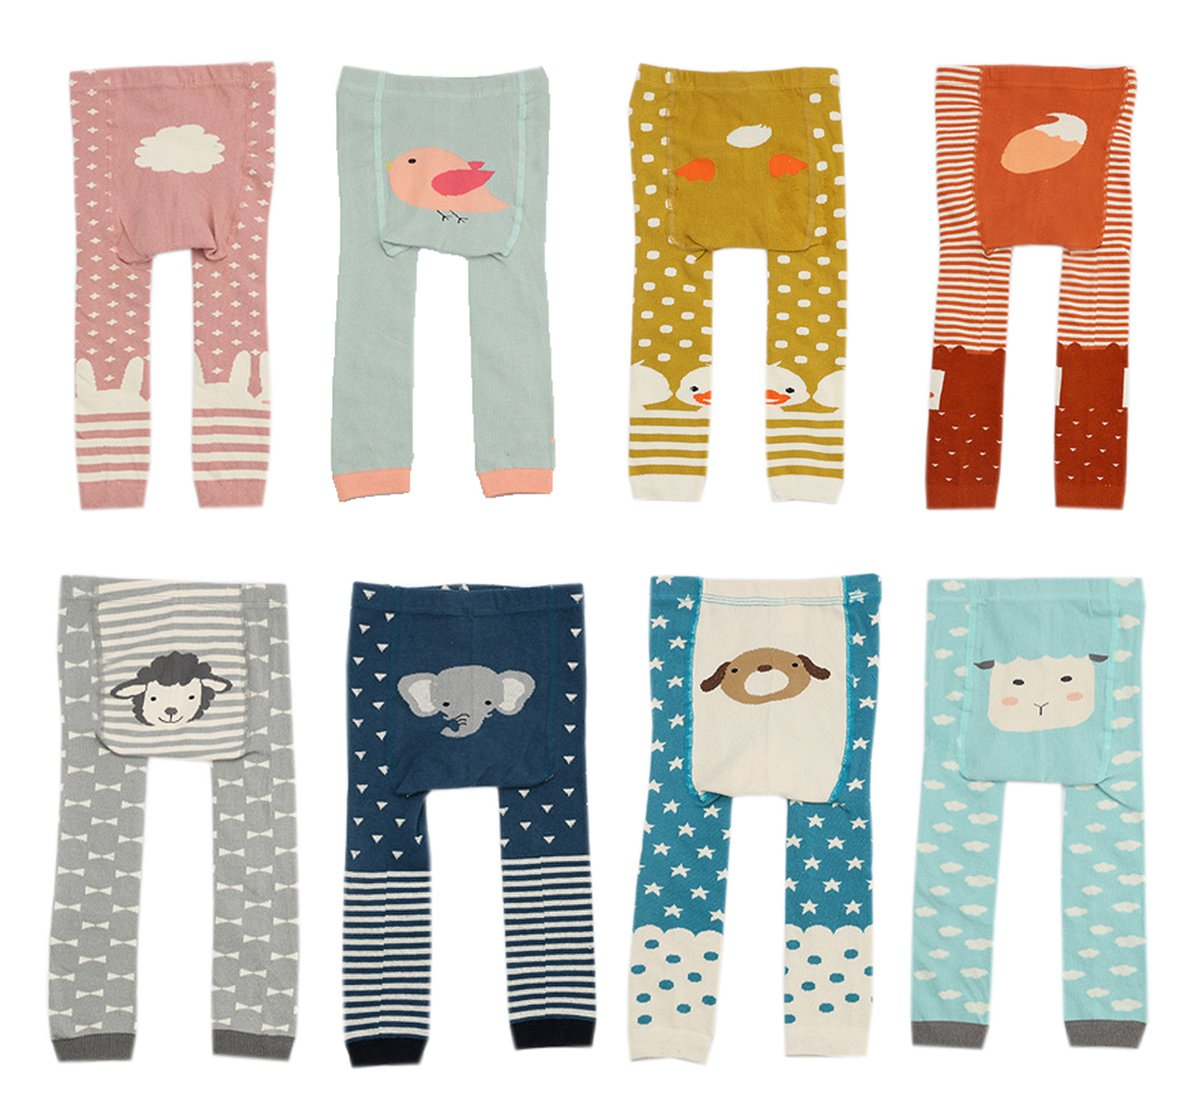 CHUNG Baby Toddler Boys Girls Cotton Footless Ankle Length Tights Soft Stretchy 6M-3Y